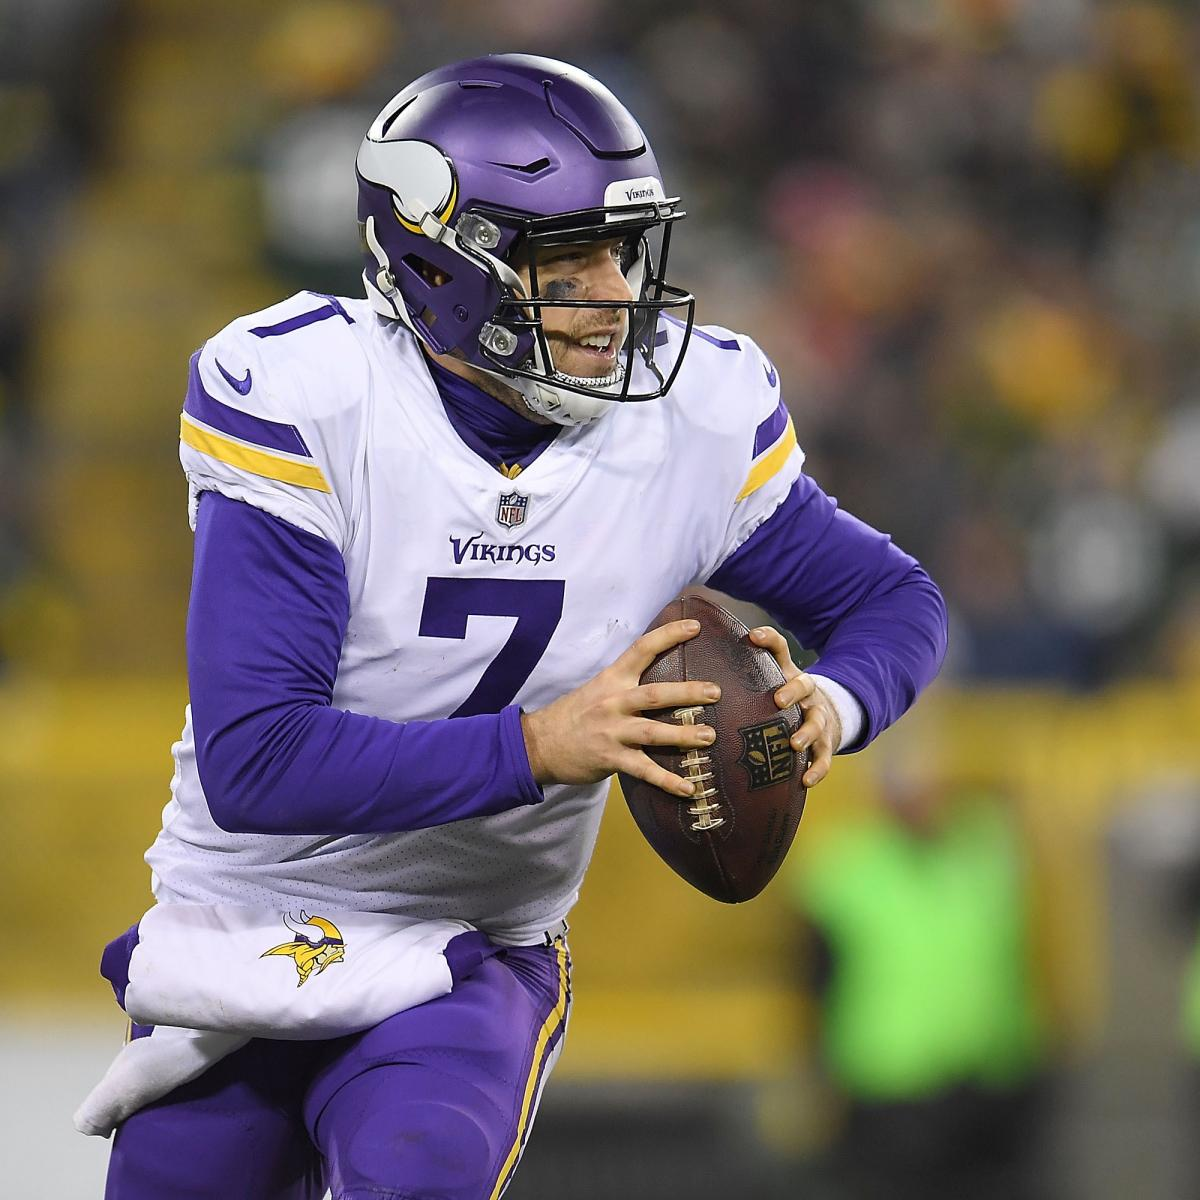 NFL Playoff Odds 2018: Vegas Picks and Predictions Ahead of Divisional Round